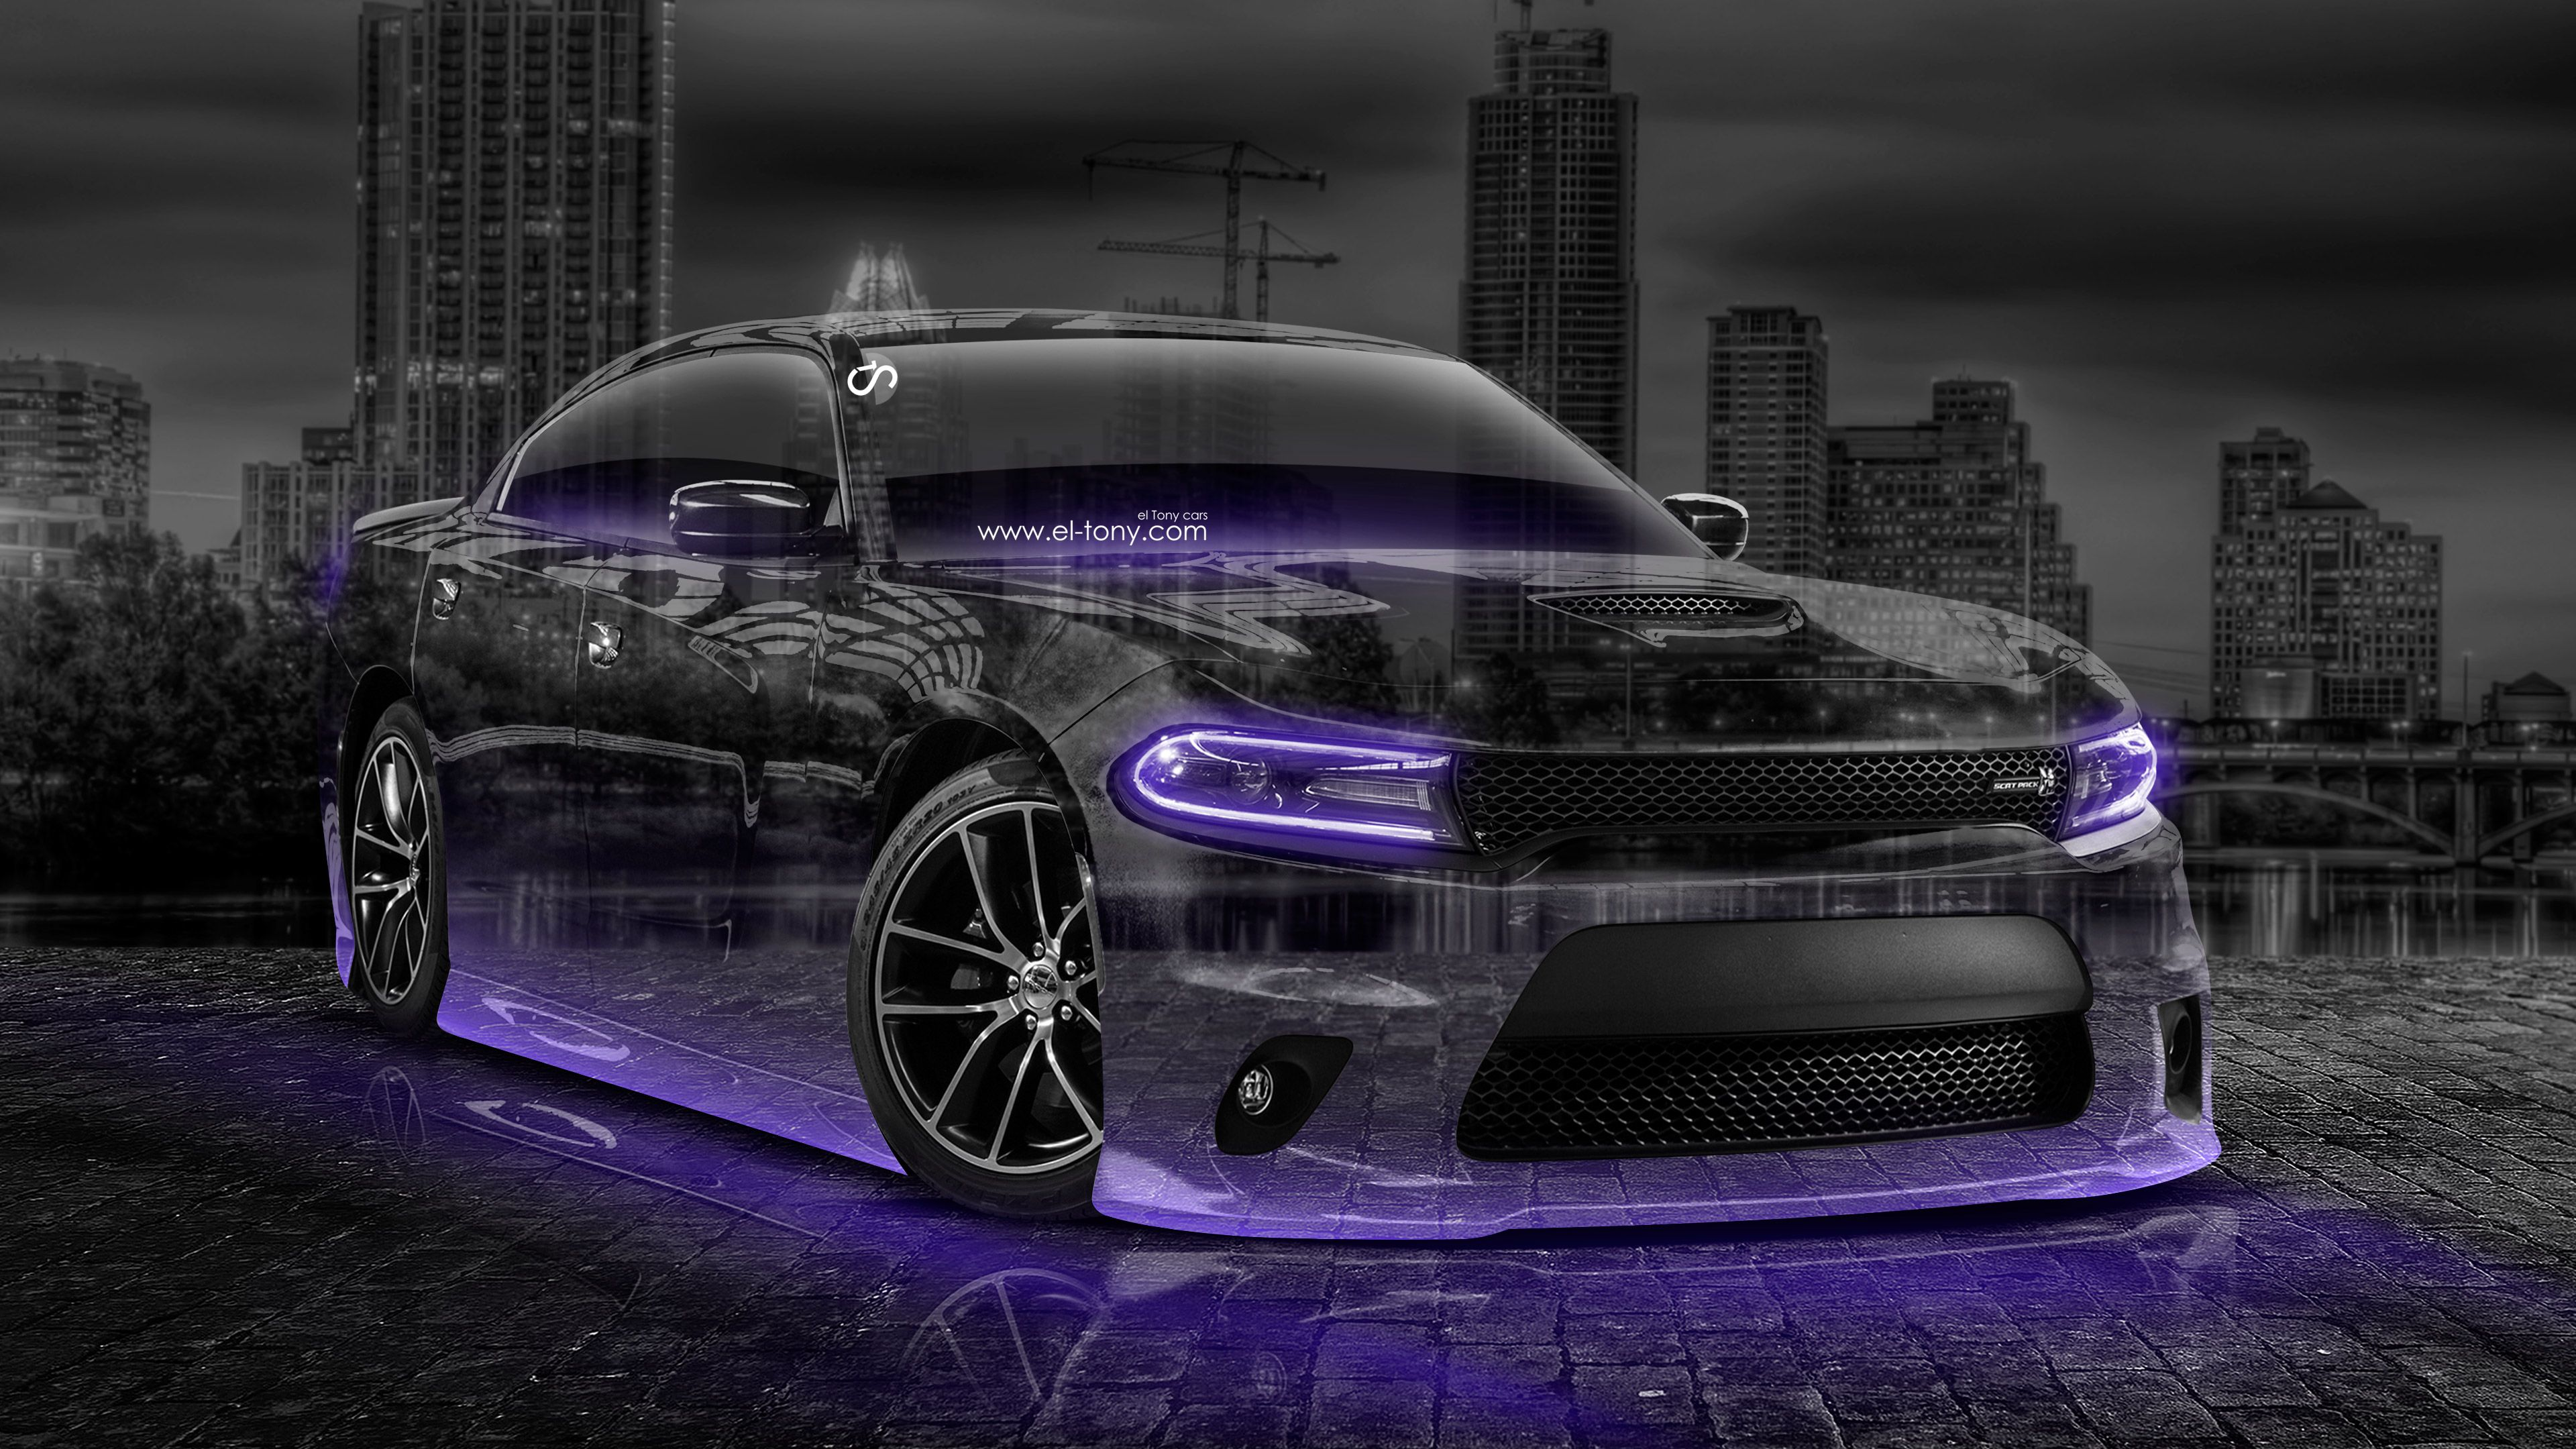 Merveilleux Dodge Charger RT Muscle Crystal City Car 2015